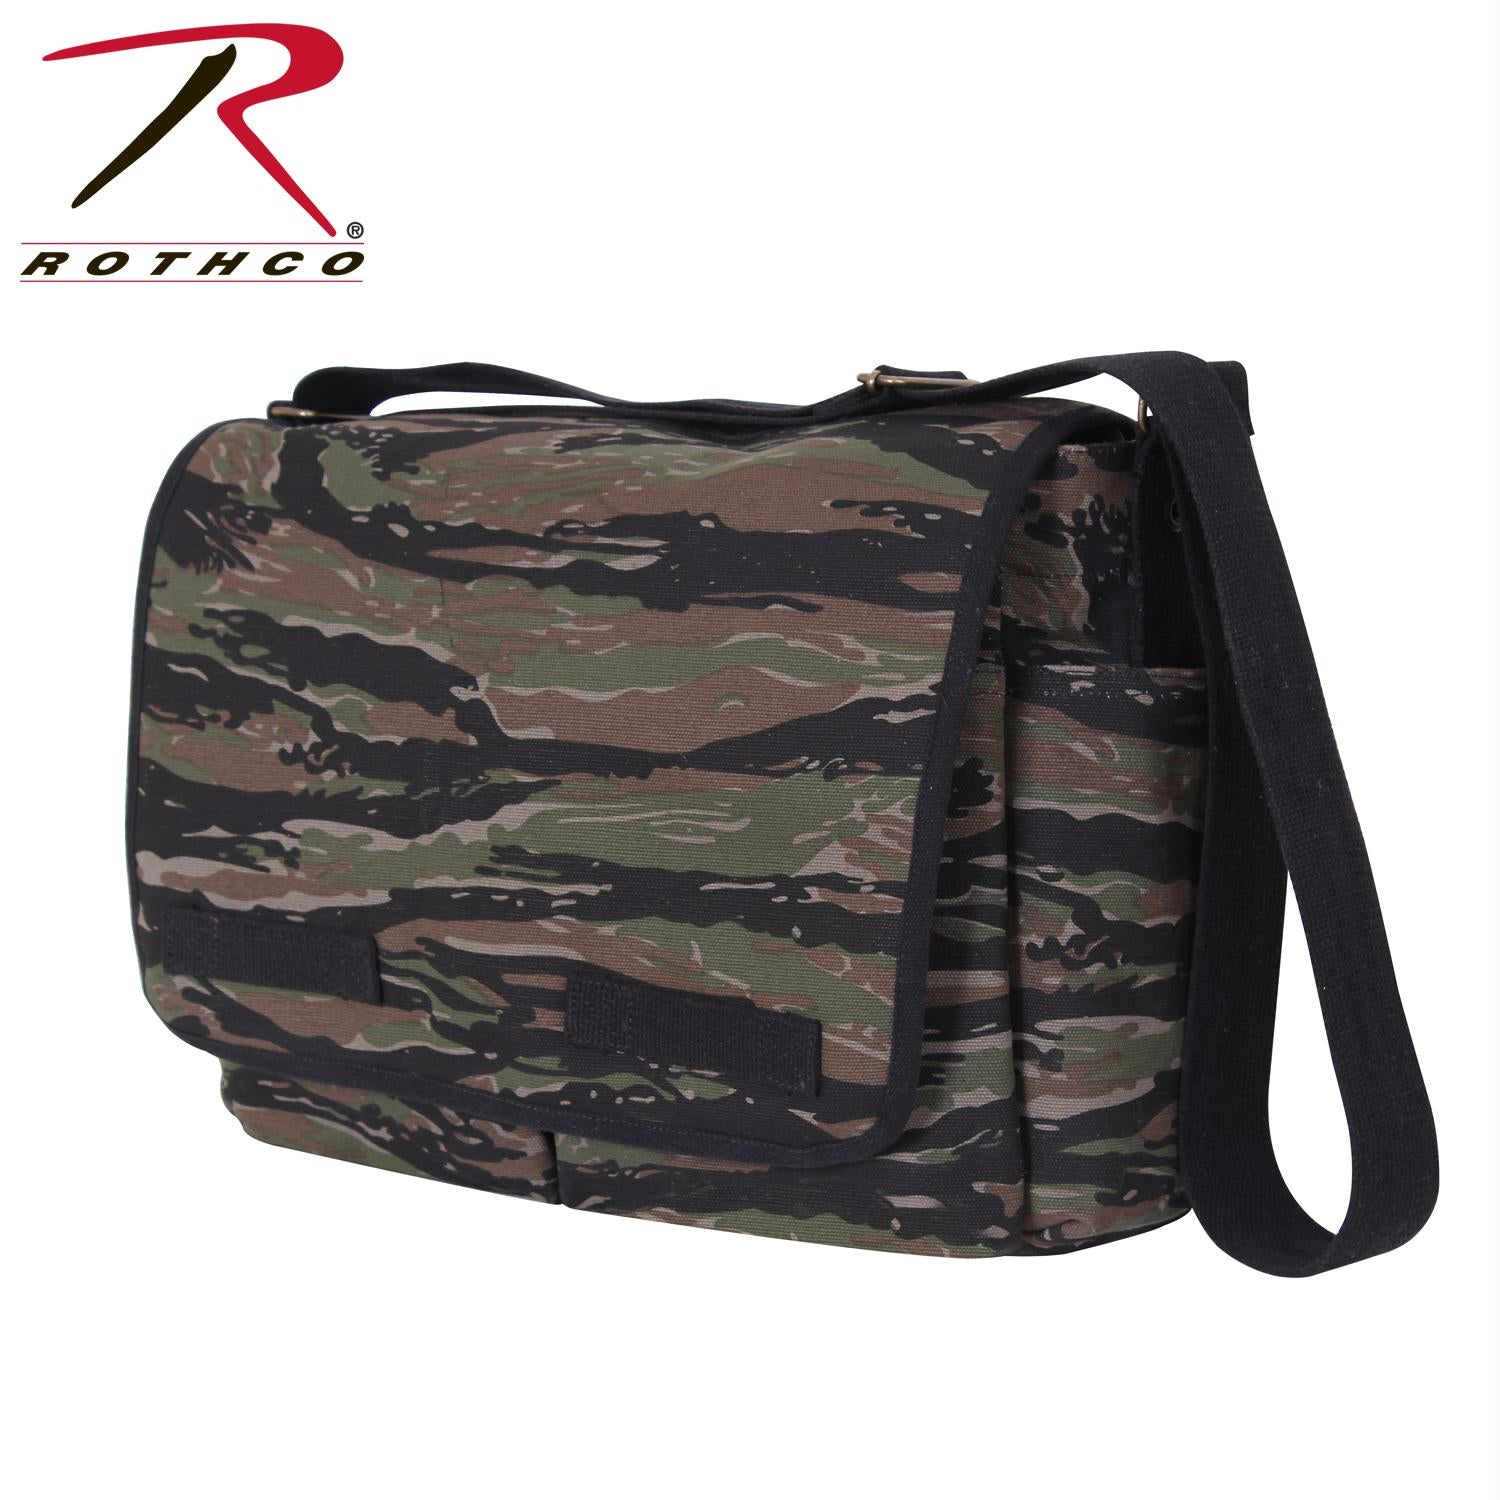 Rothco Vintage Unwashed Canvas Messenger Bag - Tiger Stripe Camo